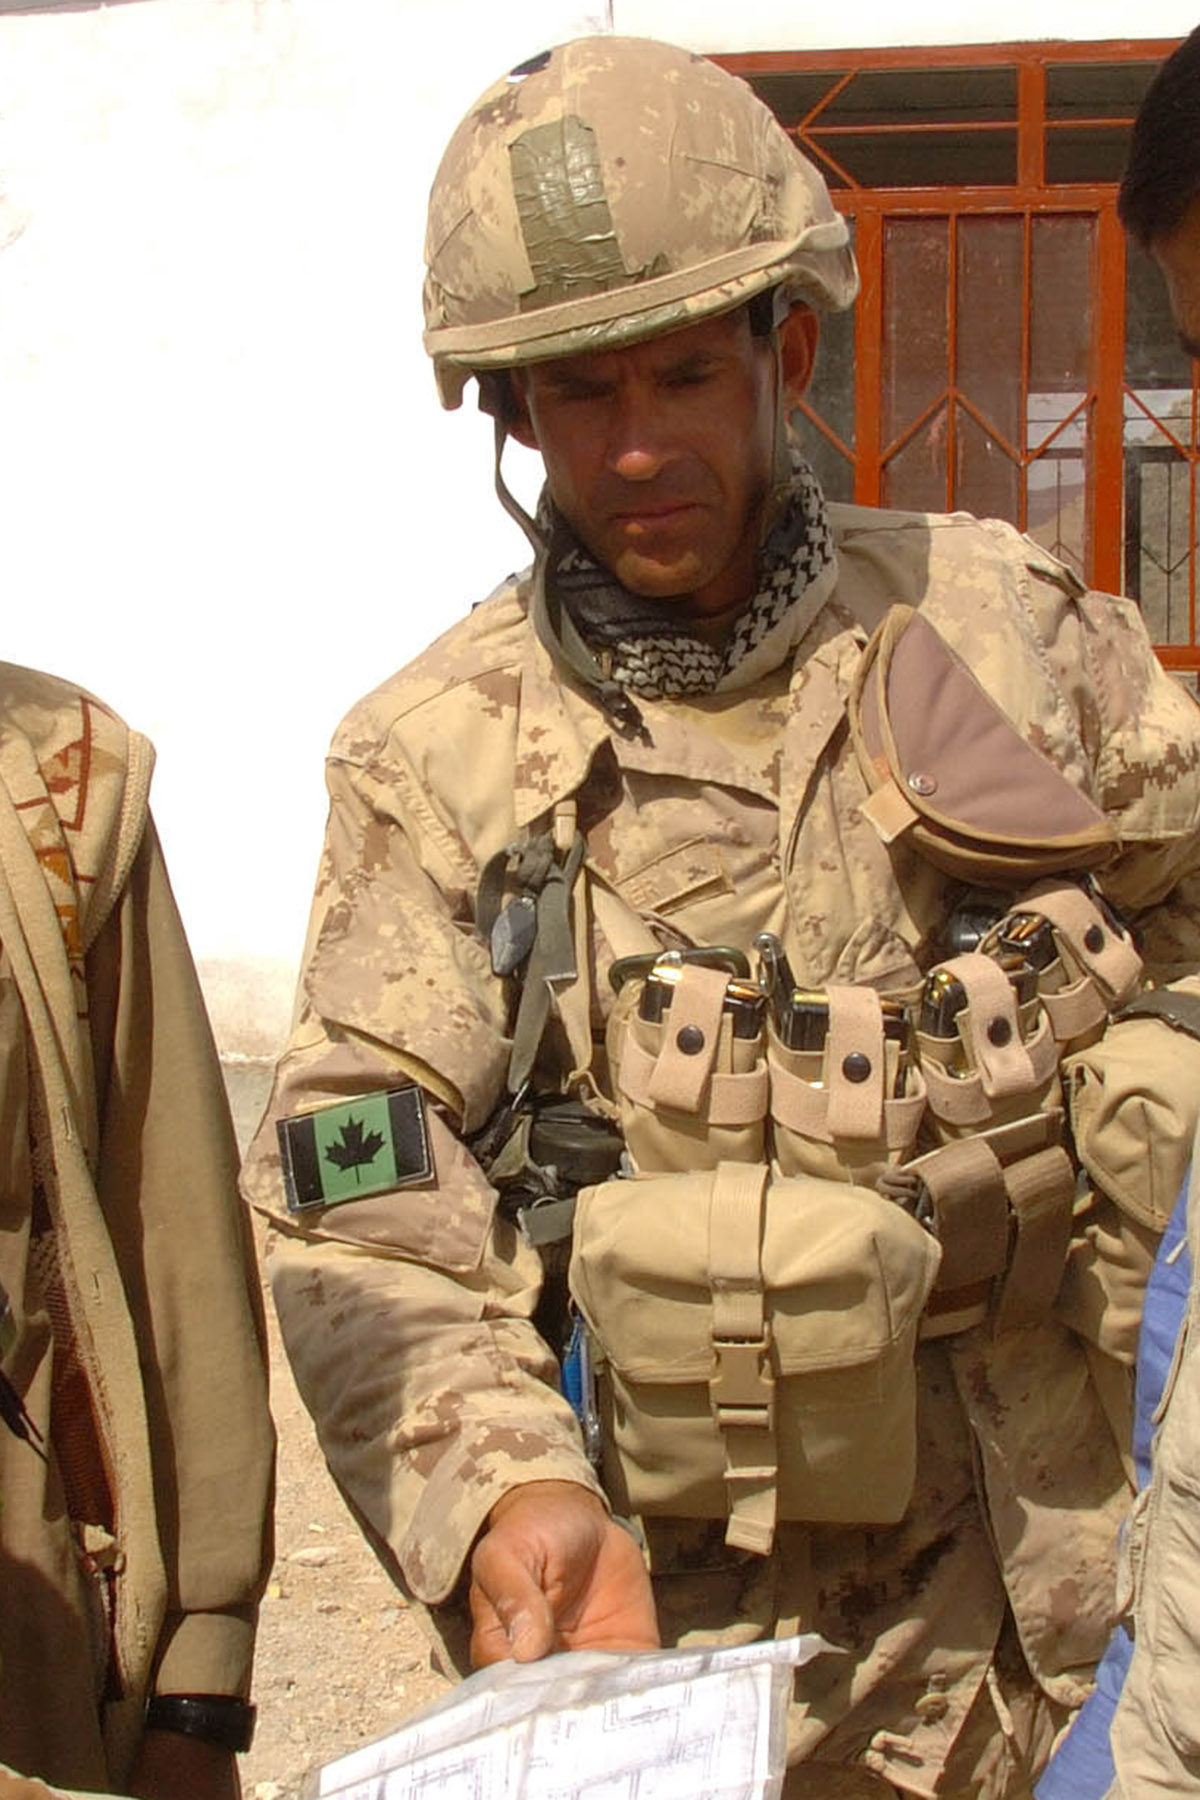 Photo of William Turner – Gumbad platoon house is located in the Shah Wali Kot region, Afghanistan. Canadian soldiers provide security and conduct patrols of the surrounding area.